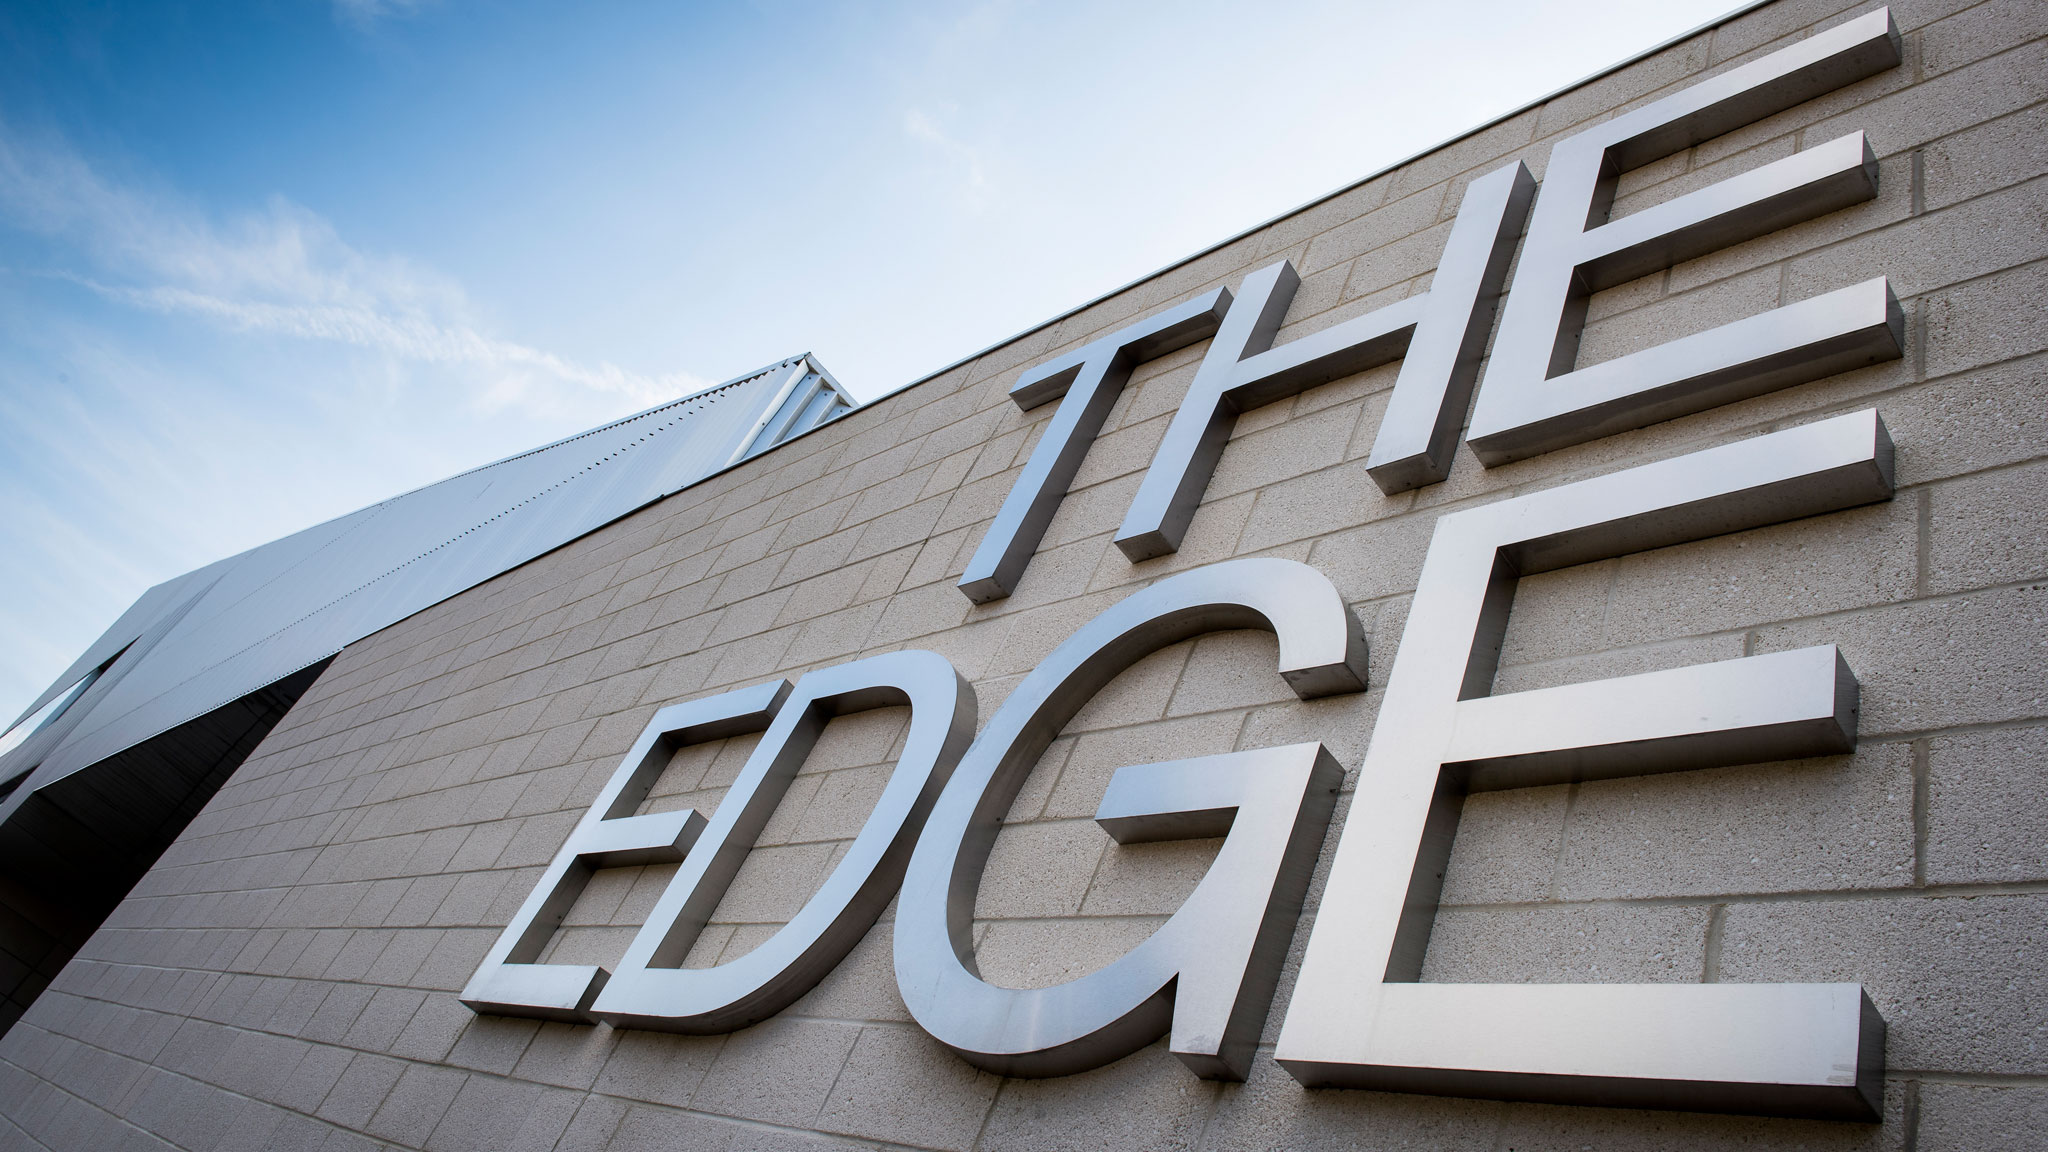 Photograph of the exterior of The Edge building on our main campus in Bath